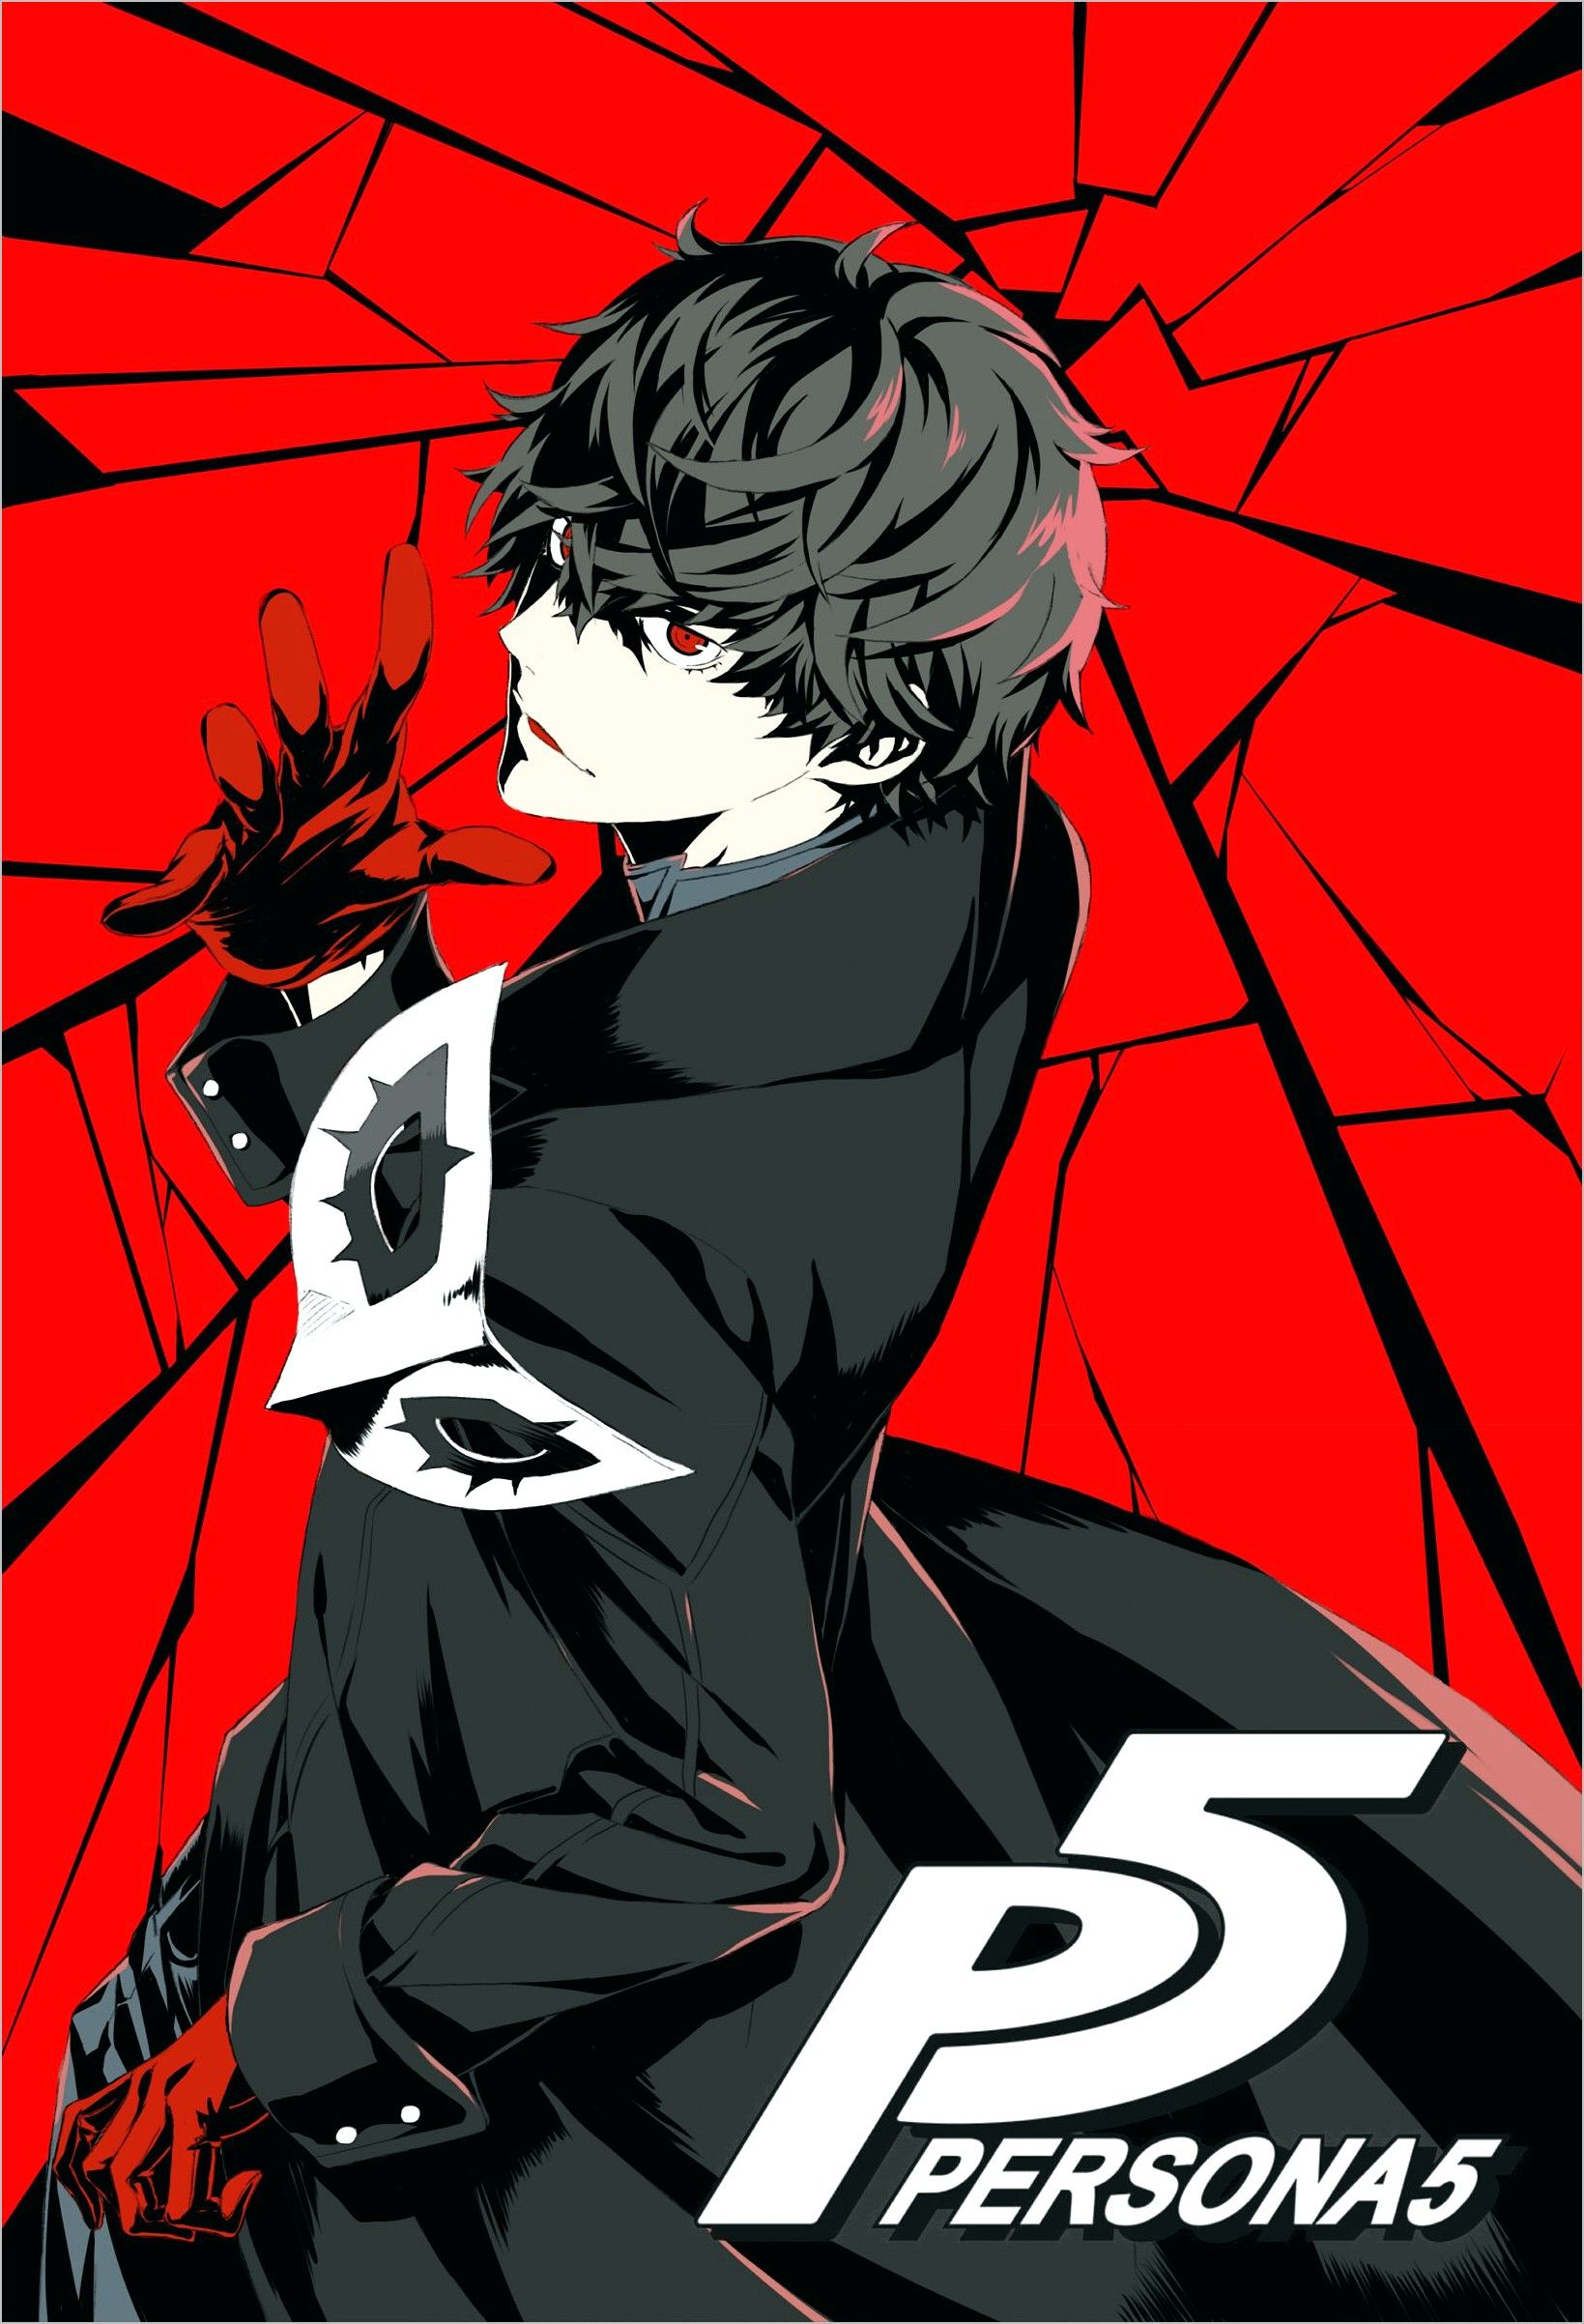 Persona 5 4k Wallpapers In 2020 Persona 5 Persona Persona 5 Joker